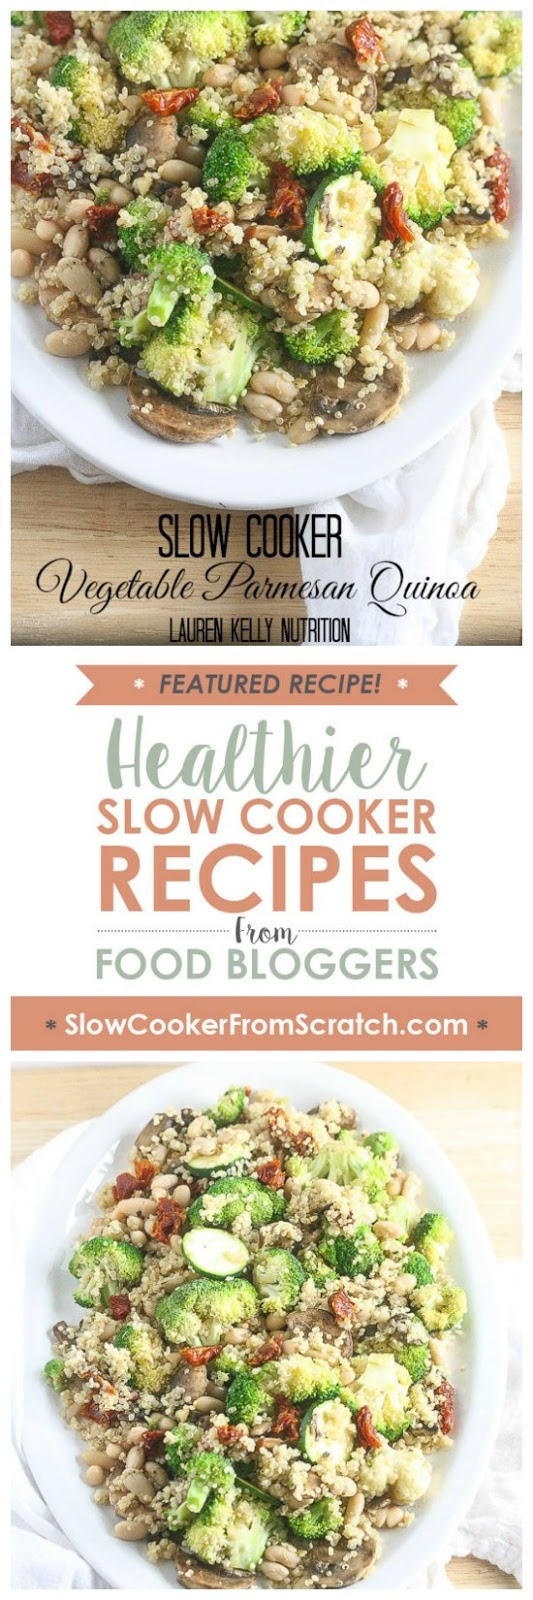 Vegetable Parmesan Quinoa in the Slow Cooker from Lauren Kelly Nutrition featured on SlowCookerFromScratch.com